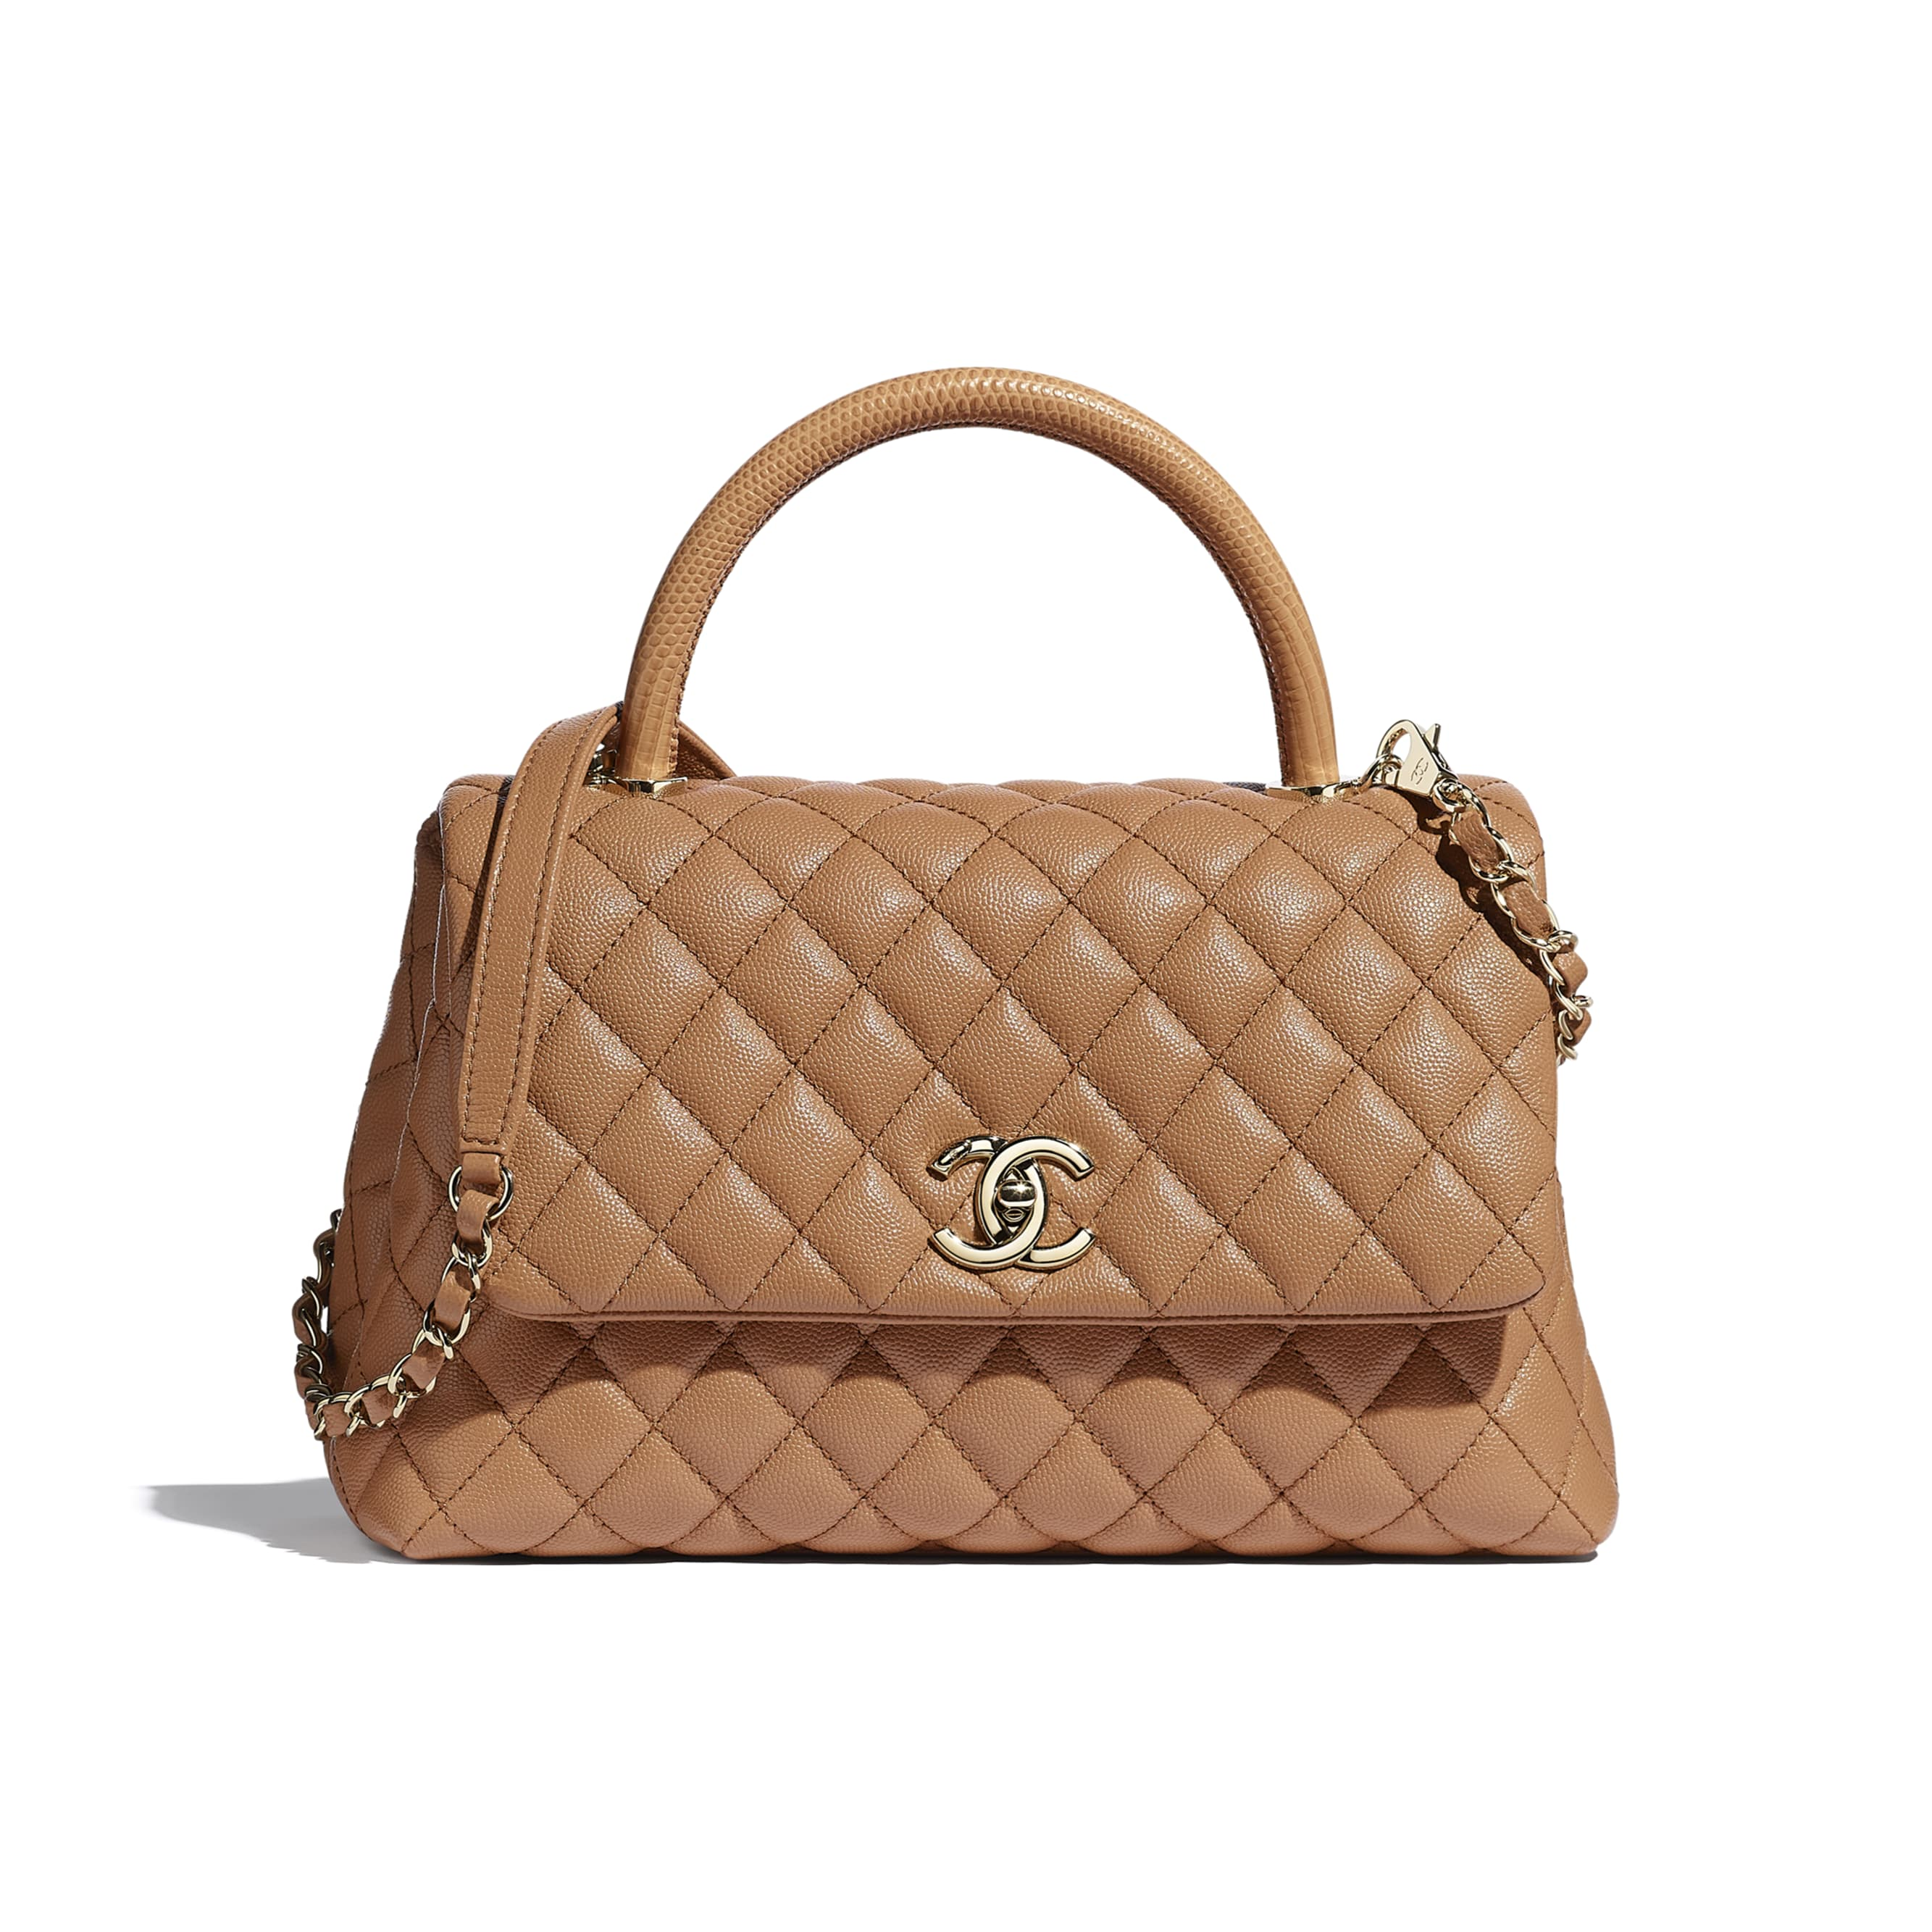 Large Flap Bag With Top Handle - Brown - Grained Calfskin, Lizard Embossed Calfskin & Gold-Tone Metal - CHANEL - Default view - see standard sized version